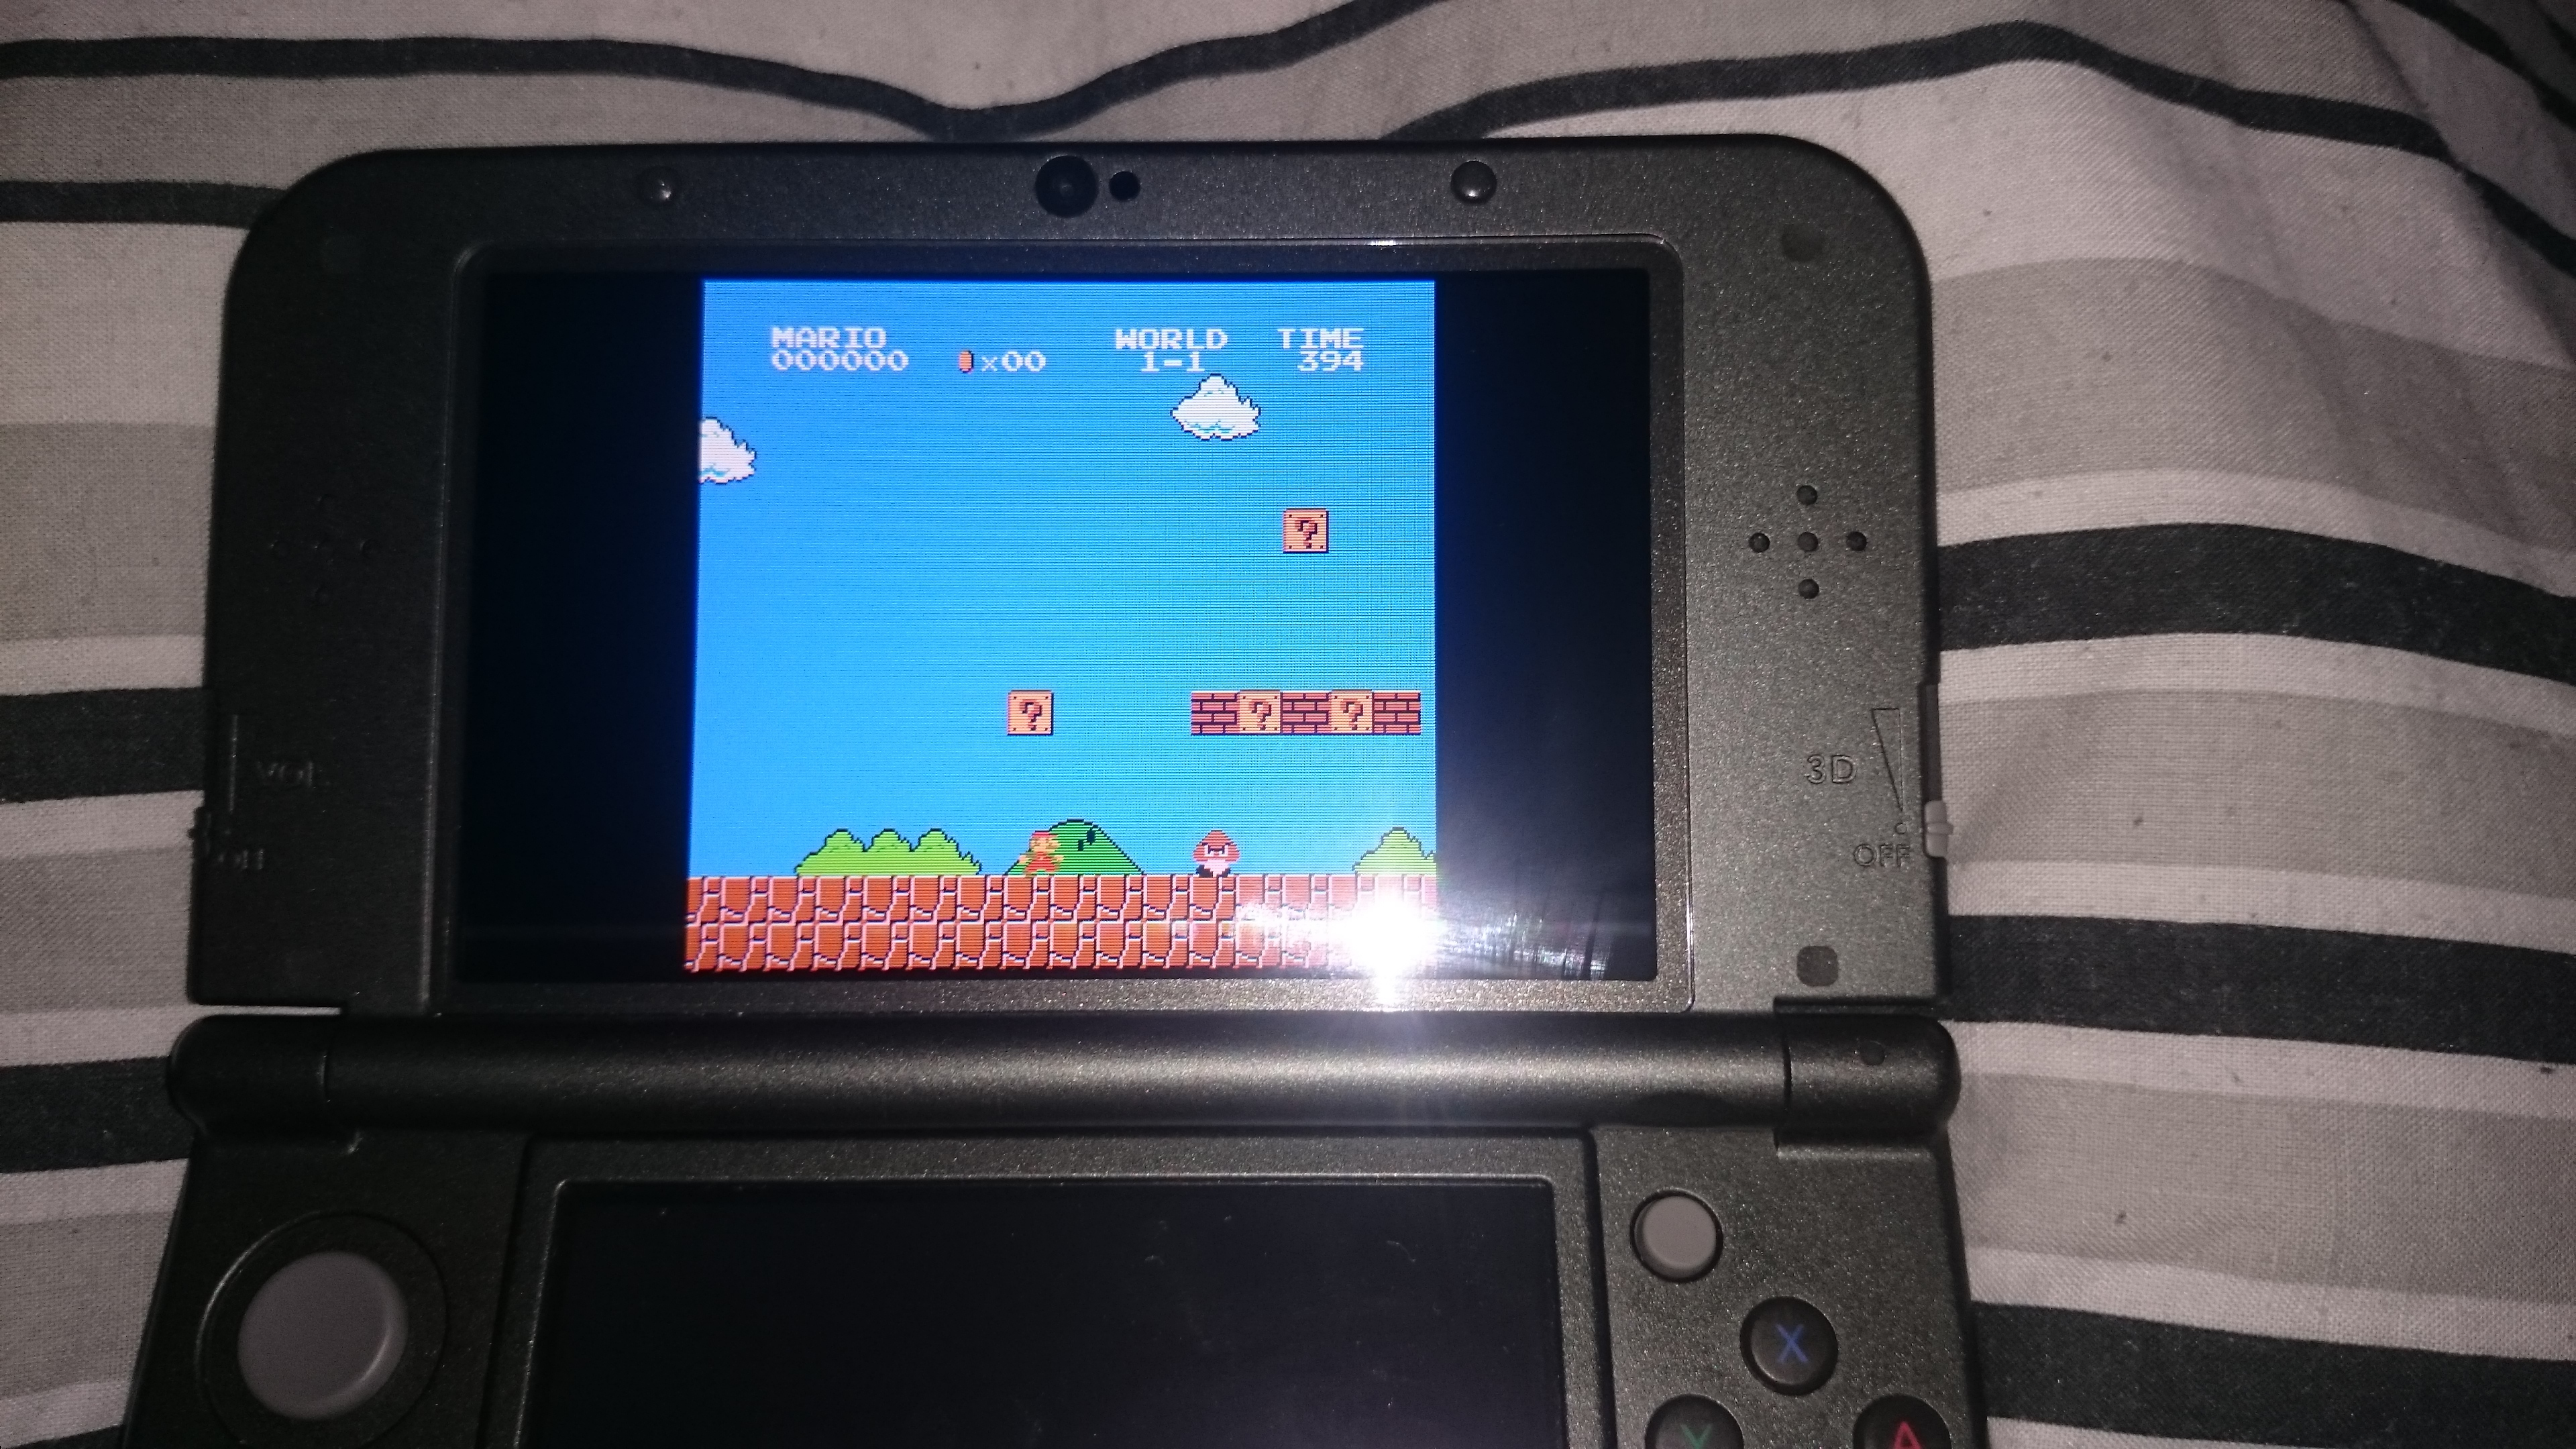 how to run homebrew on 3ds r4 cartridge